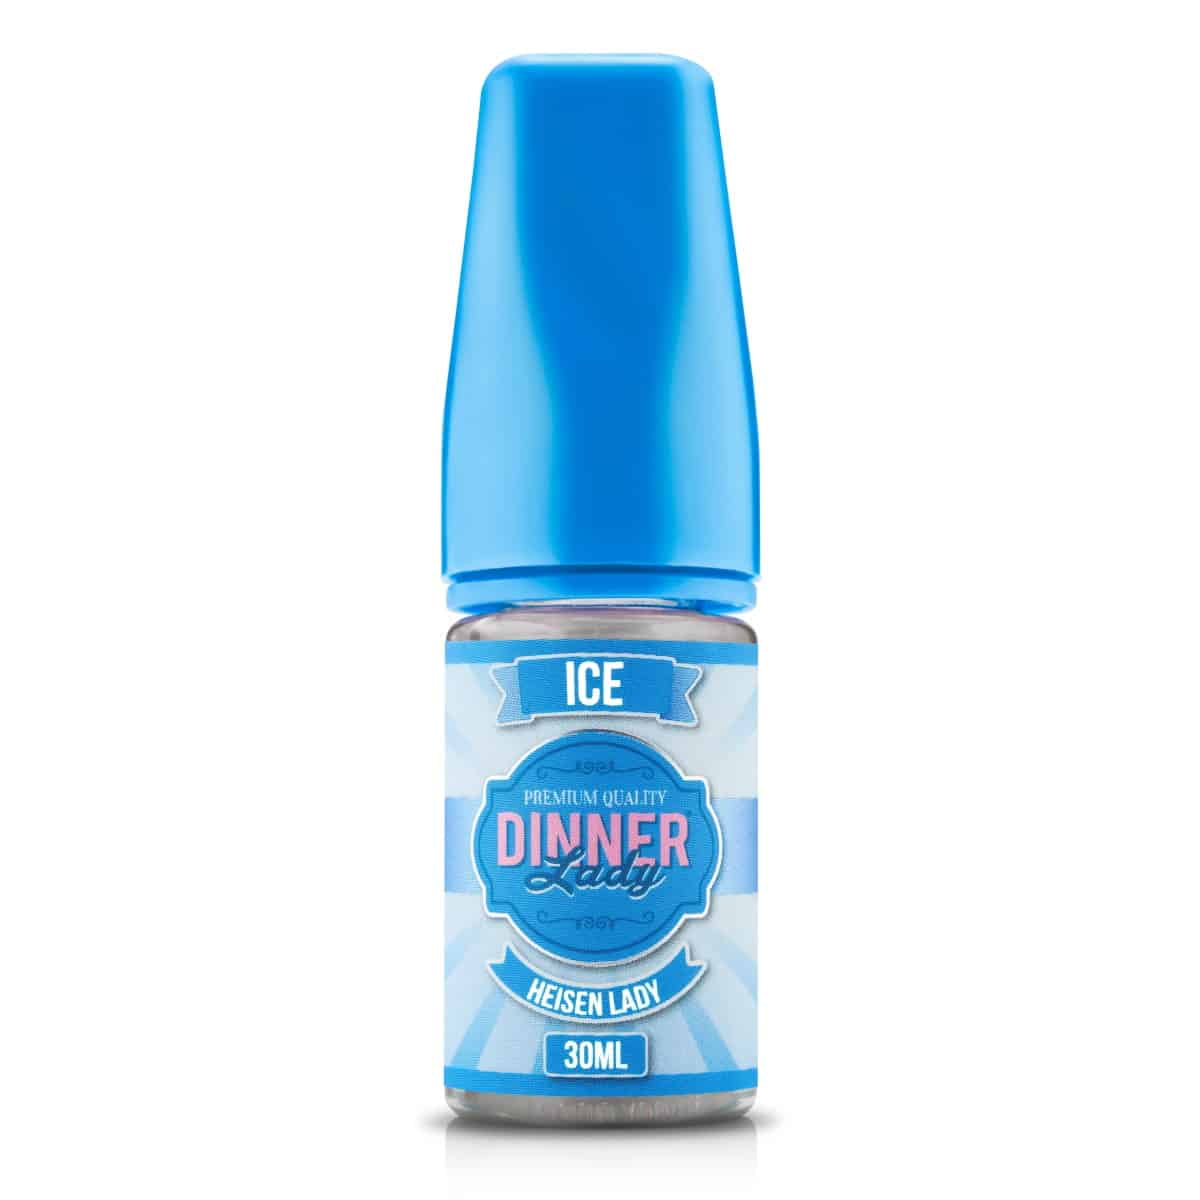 Heisenlady Dinner Lady Ice Concentrate 30ml